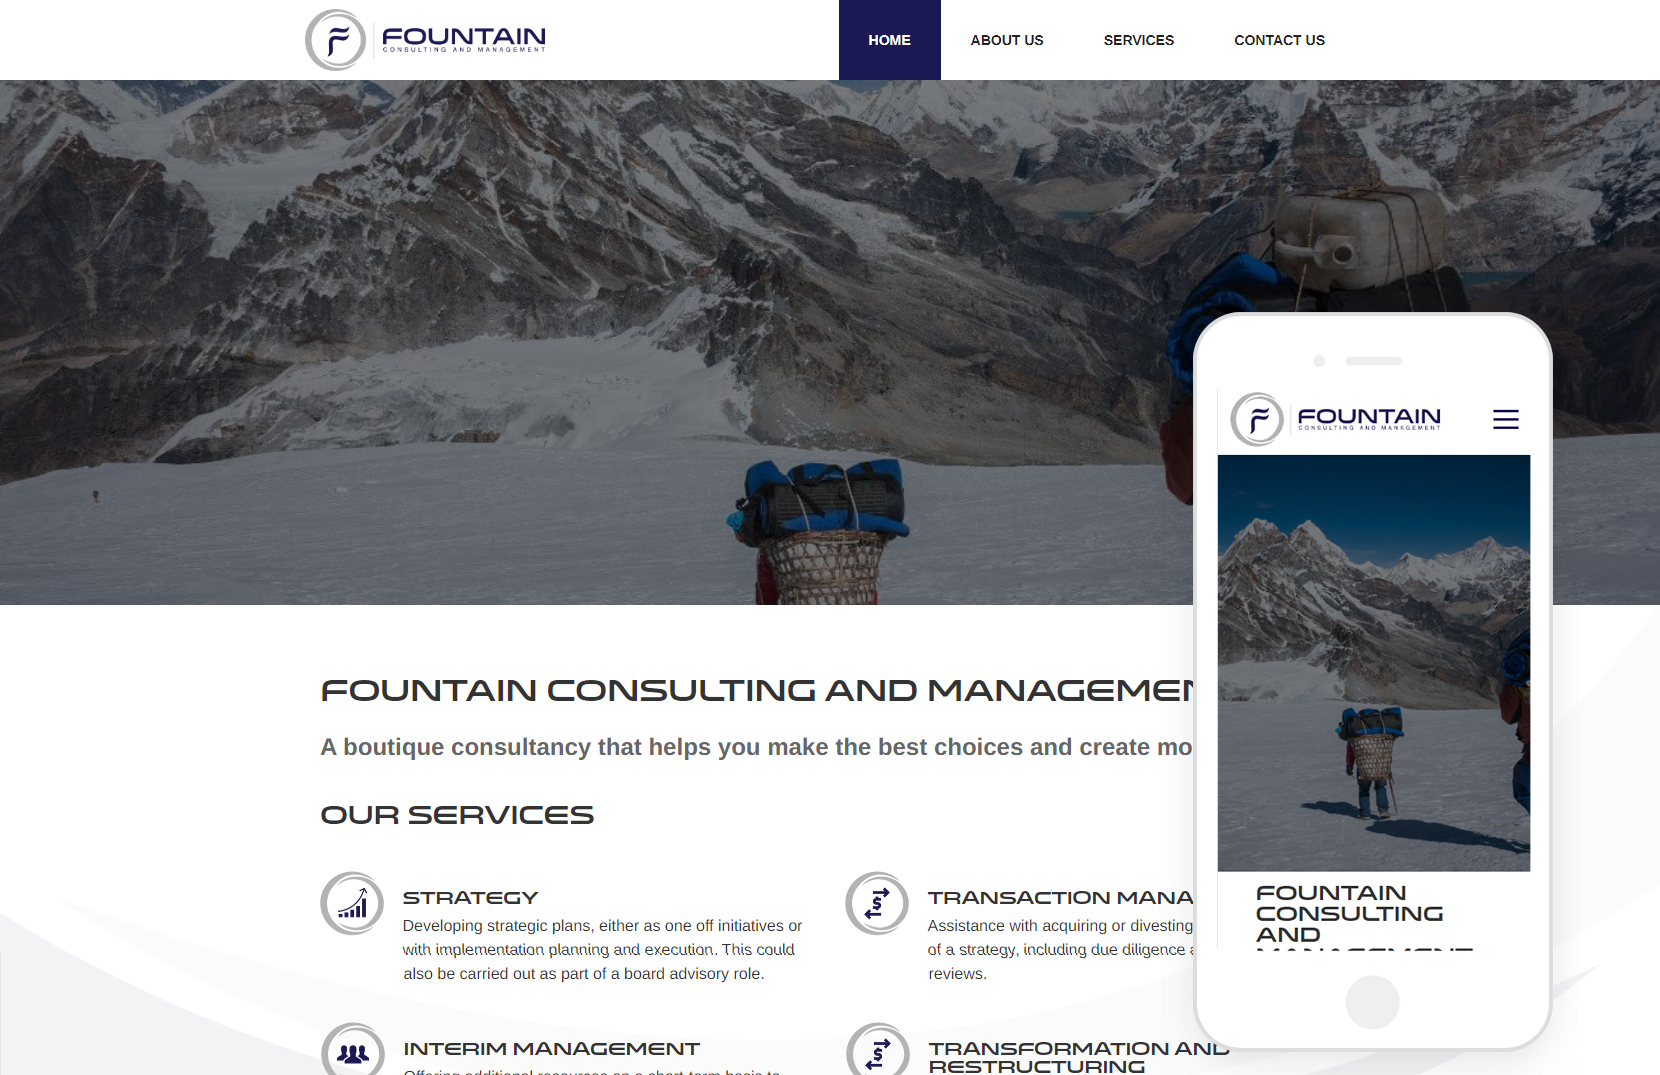 Fountain Consulting